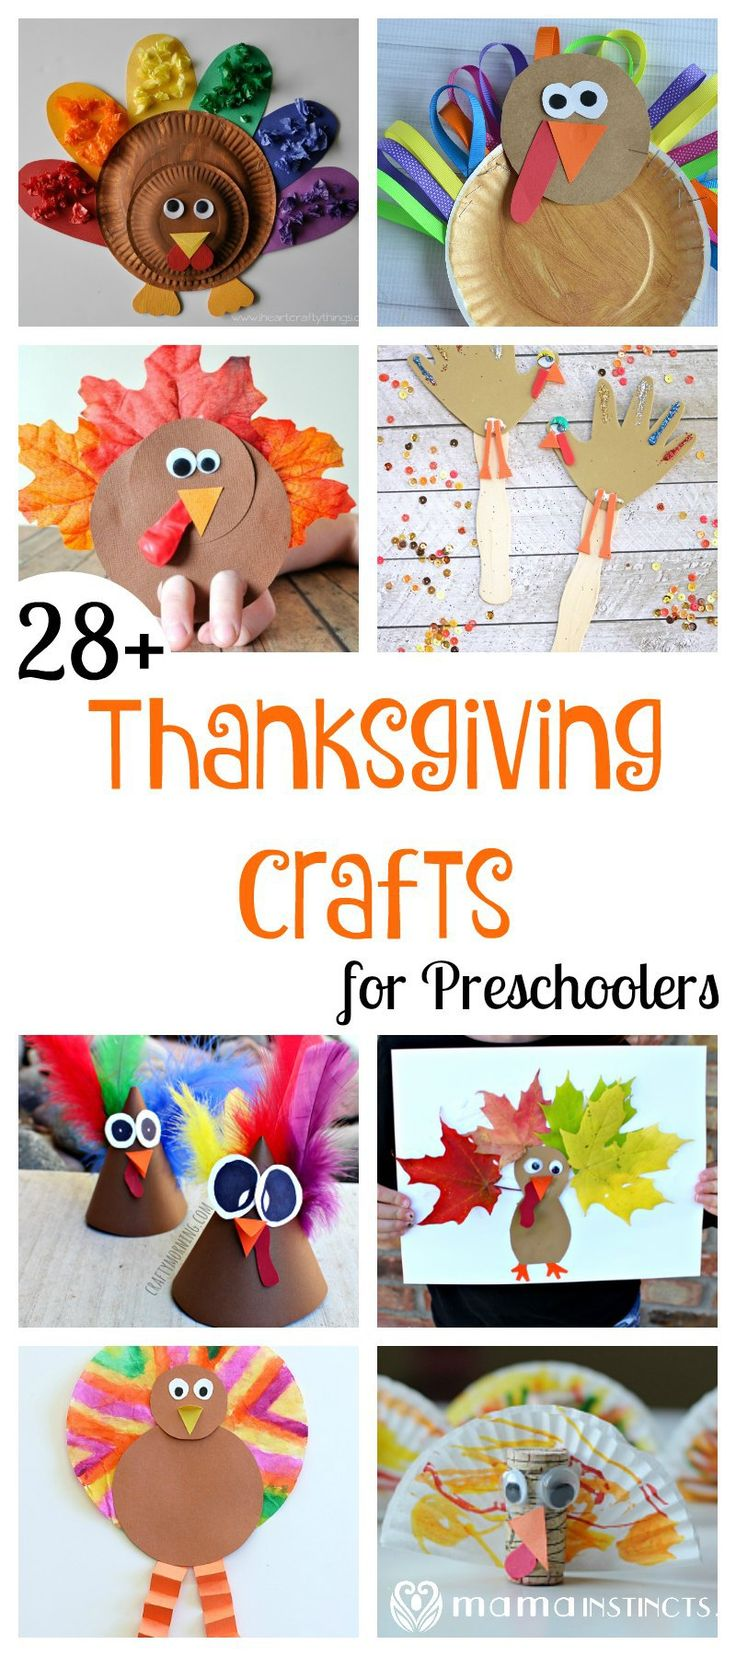 Try these fun and easy Thanksgiving crafts for preschoolers: all kinds of turkeys, hats and even leaf coloring. All sorts of thanksgiving kid activities to keep your kids busy.